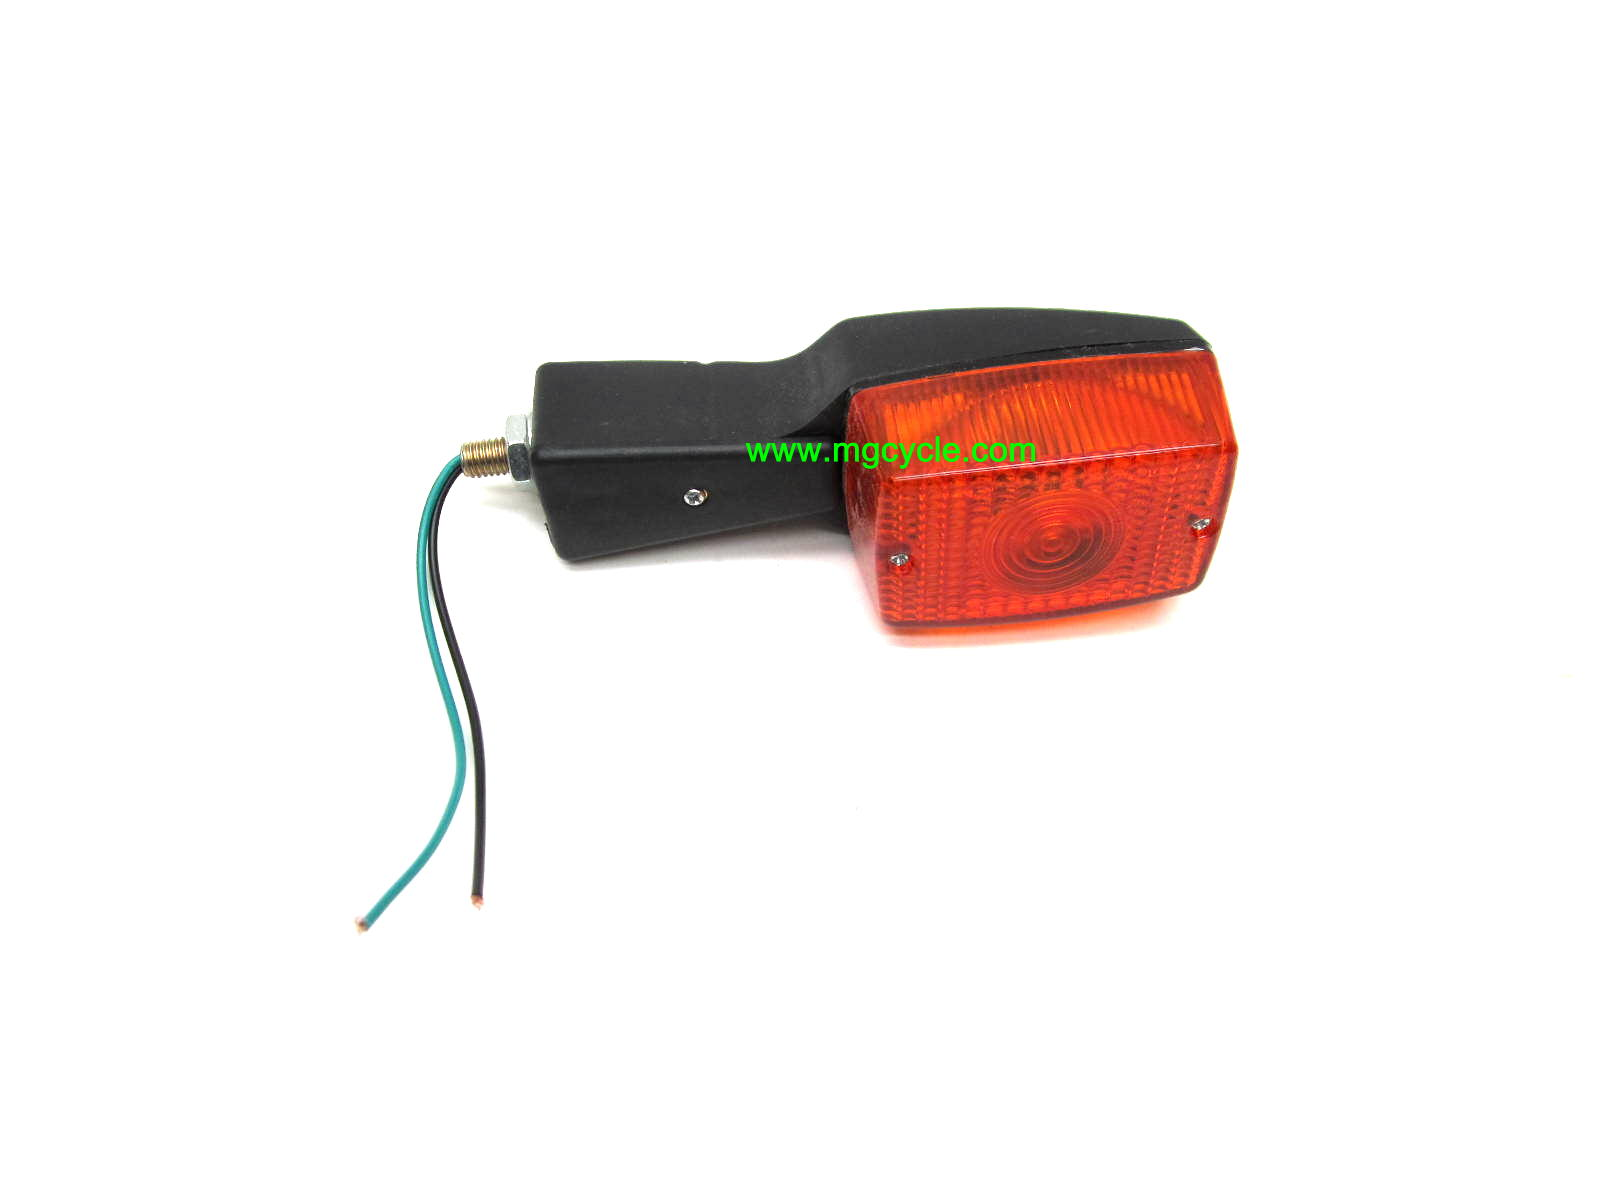 turn signal, rear, Ducati MHR 900/1000, R/L 0664.74.400